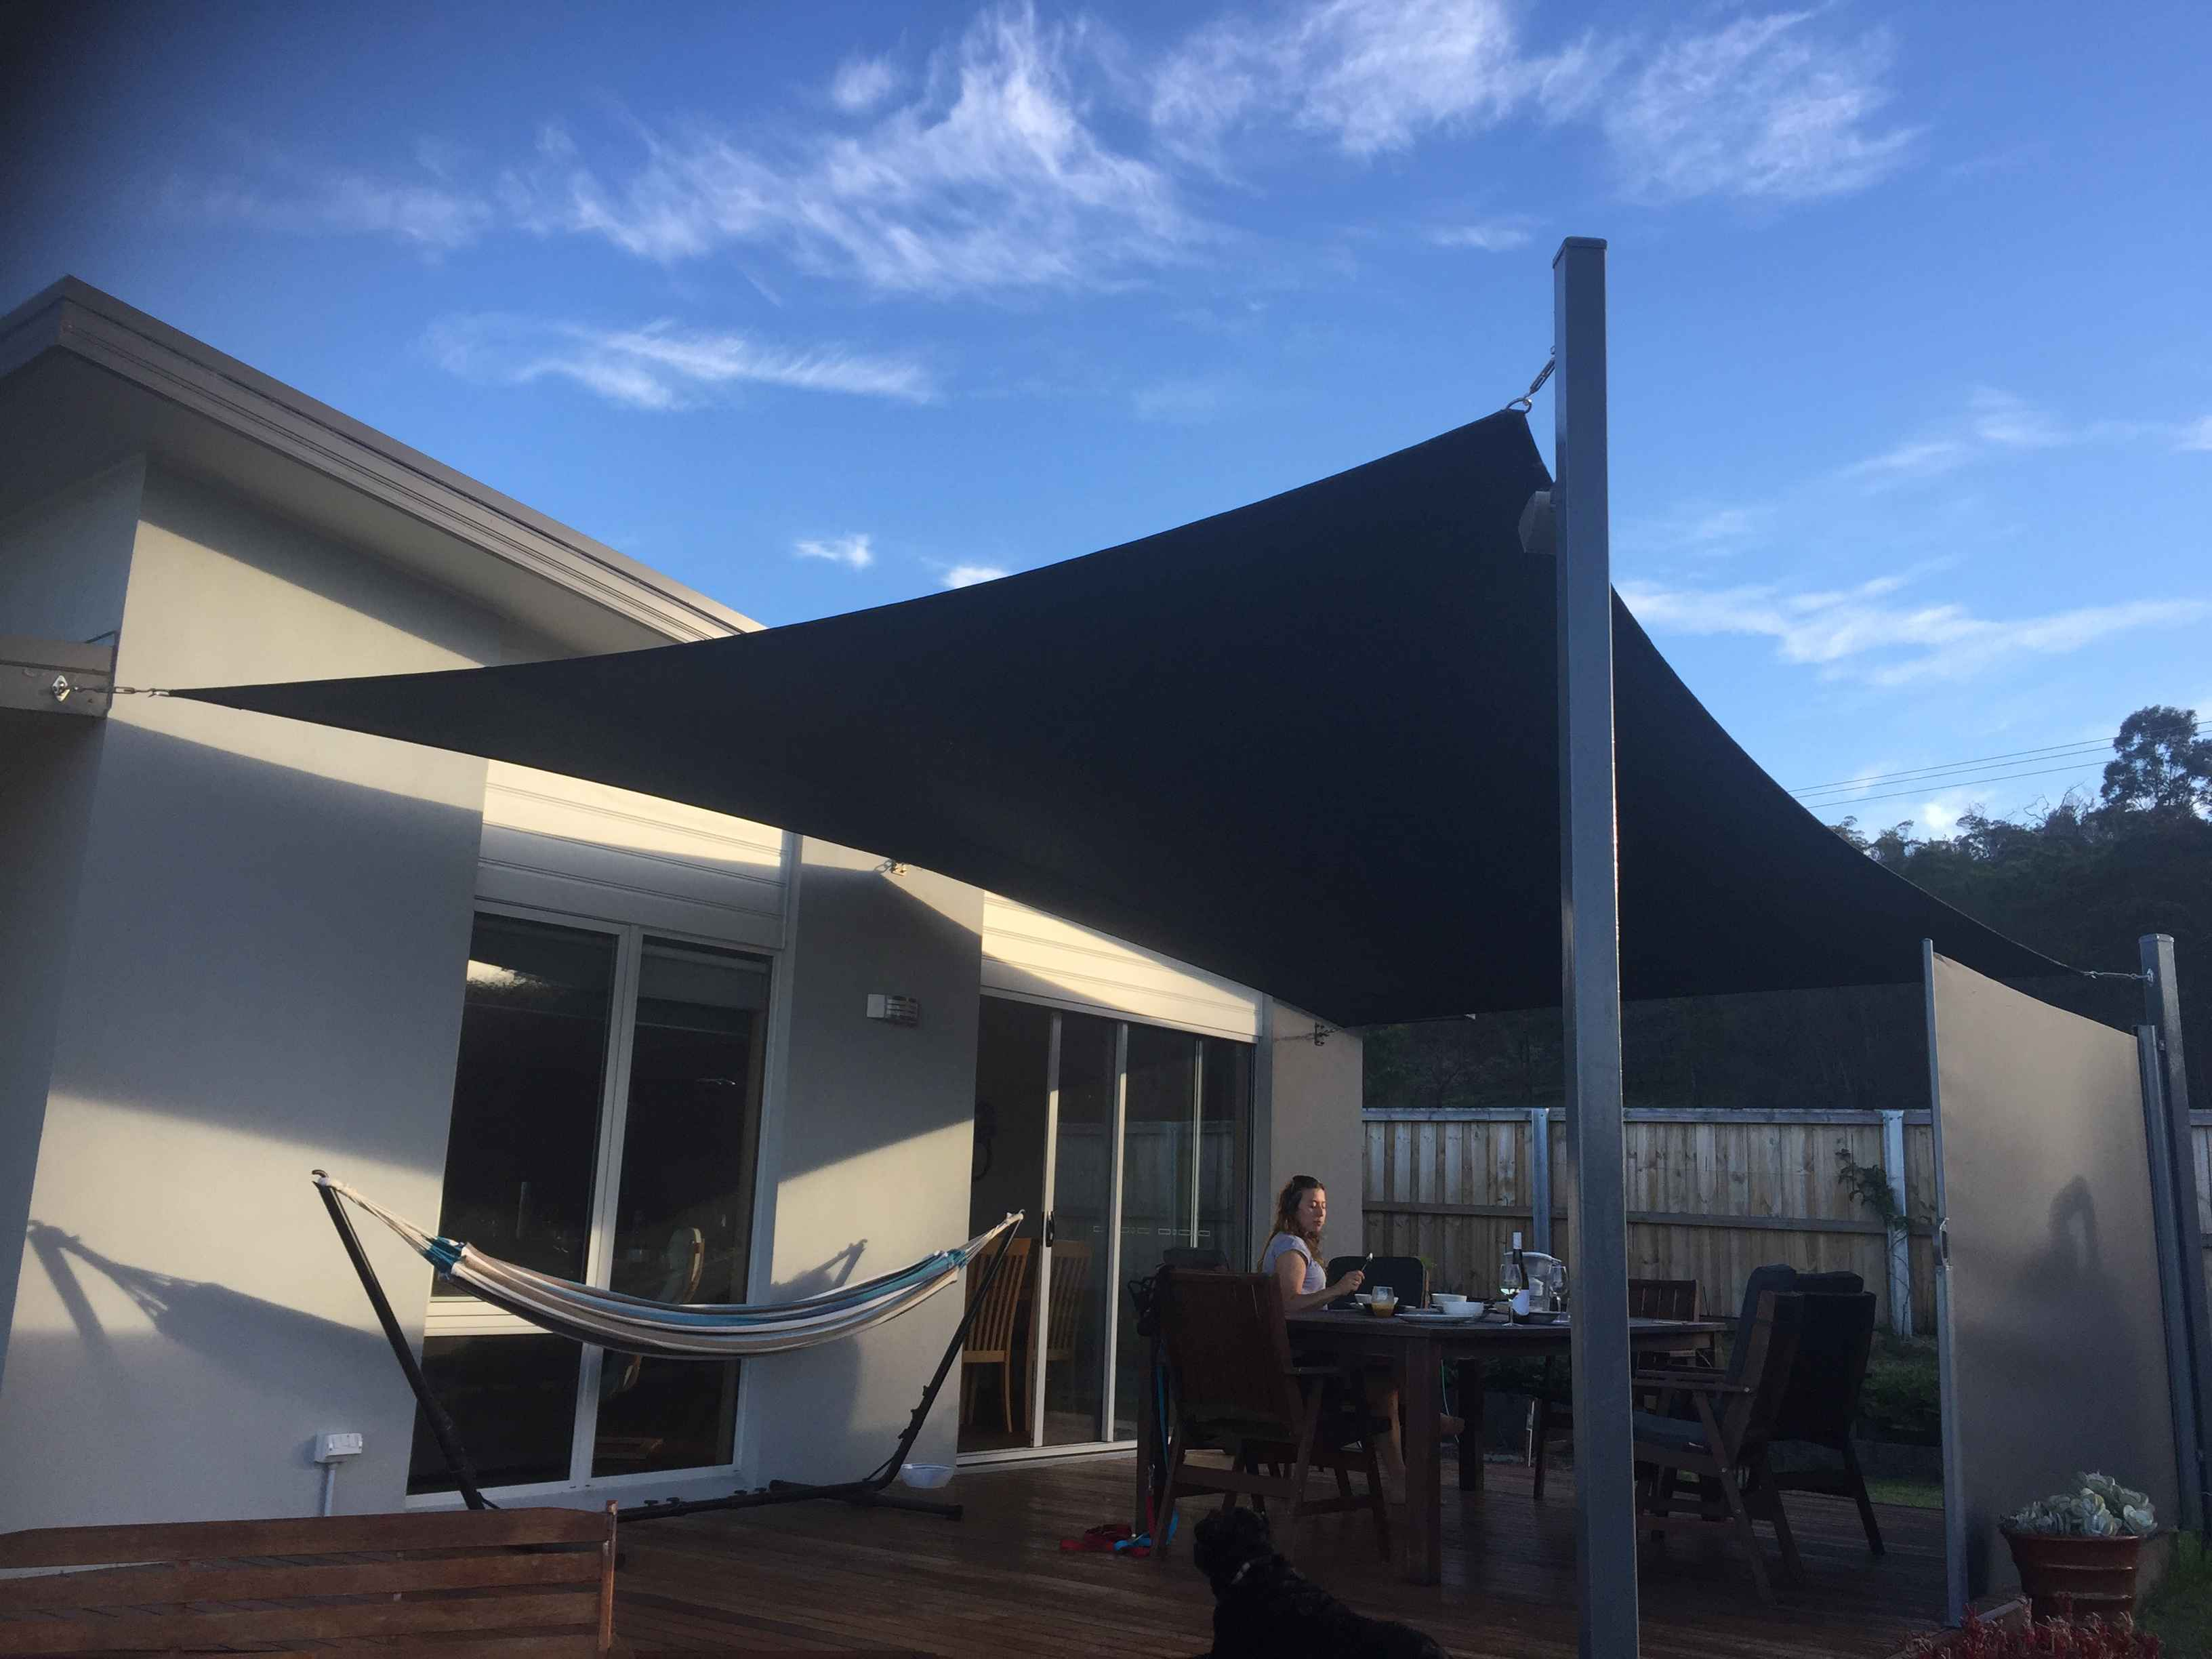 Sail shade World shade sail in Tasmania, Australia